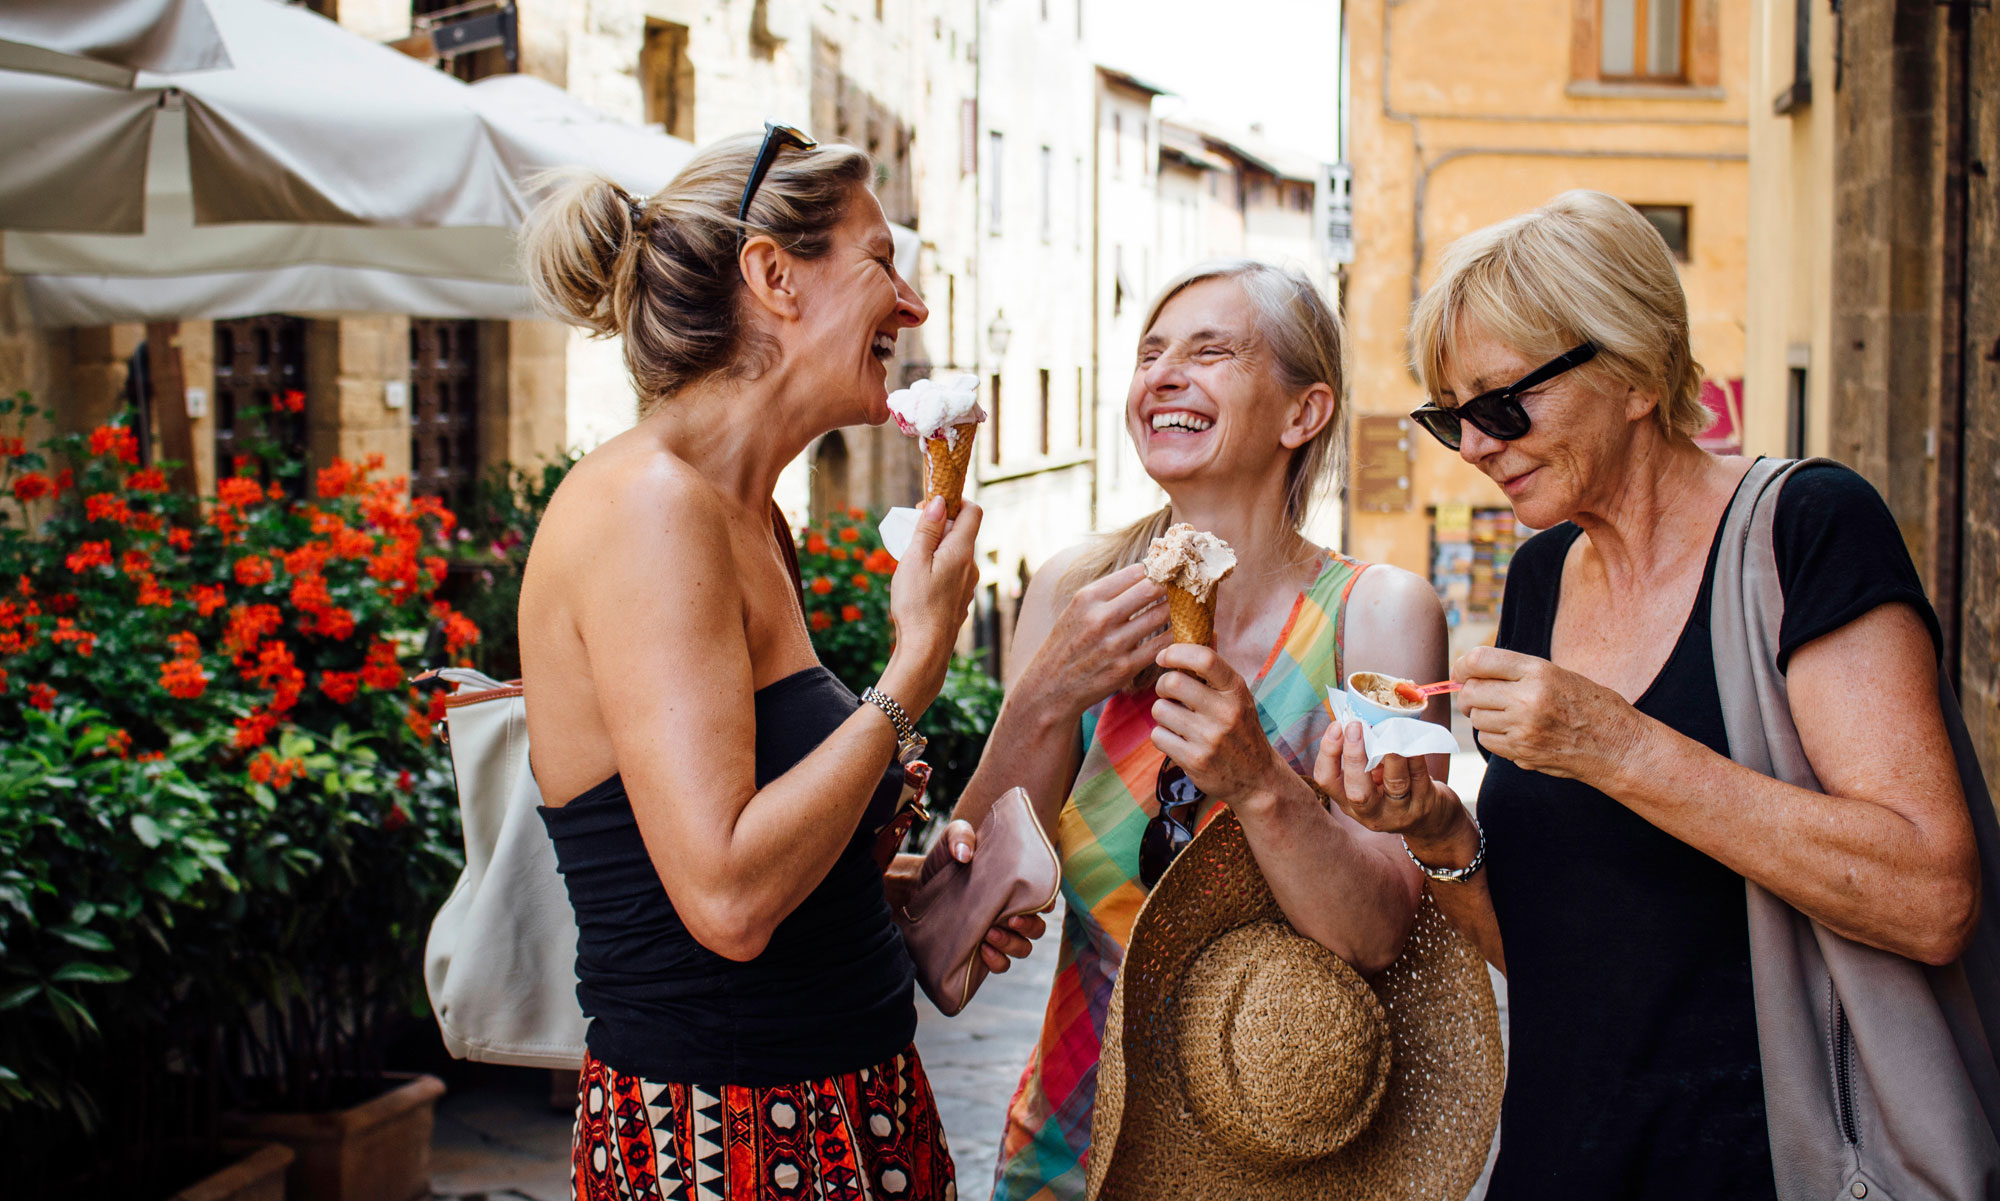 Three happy women eating icecream in town.